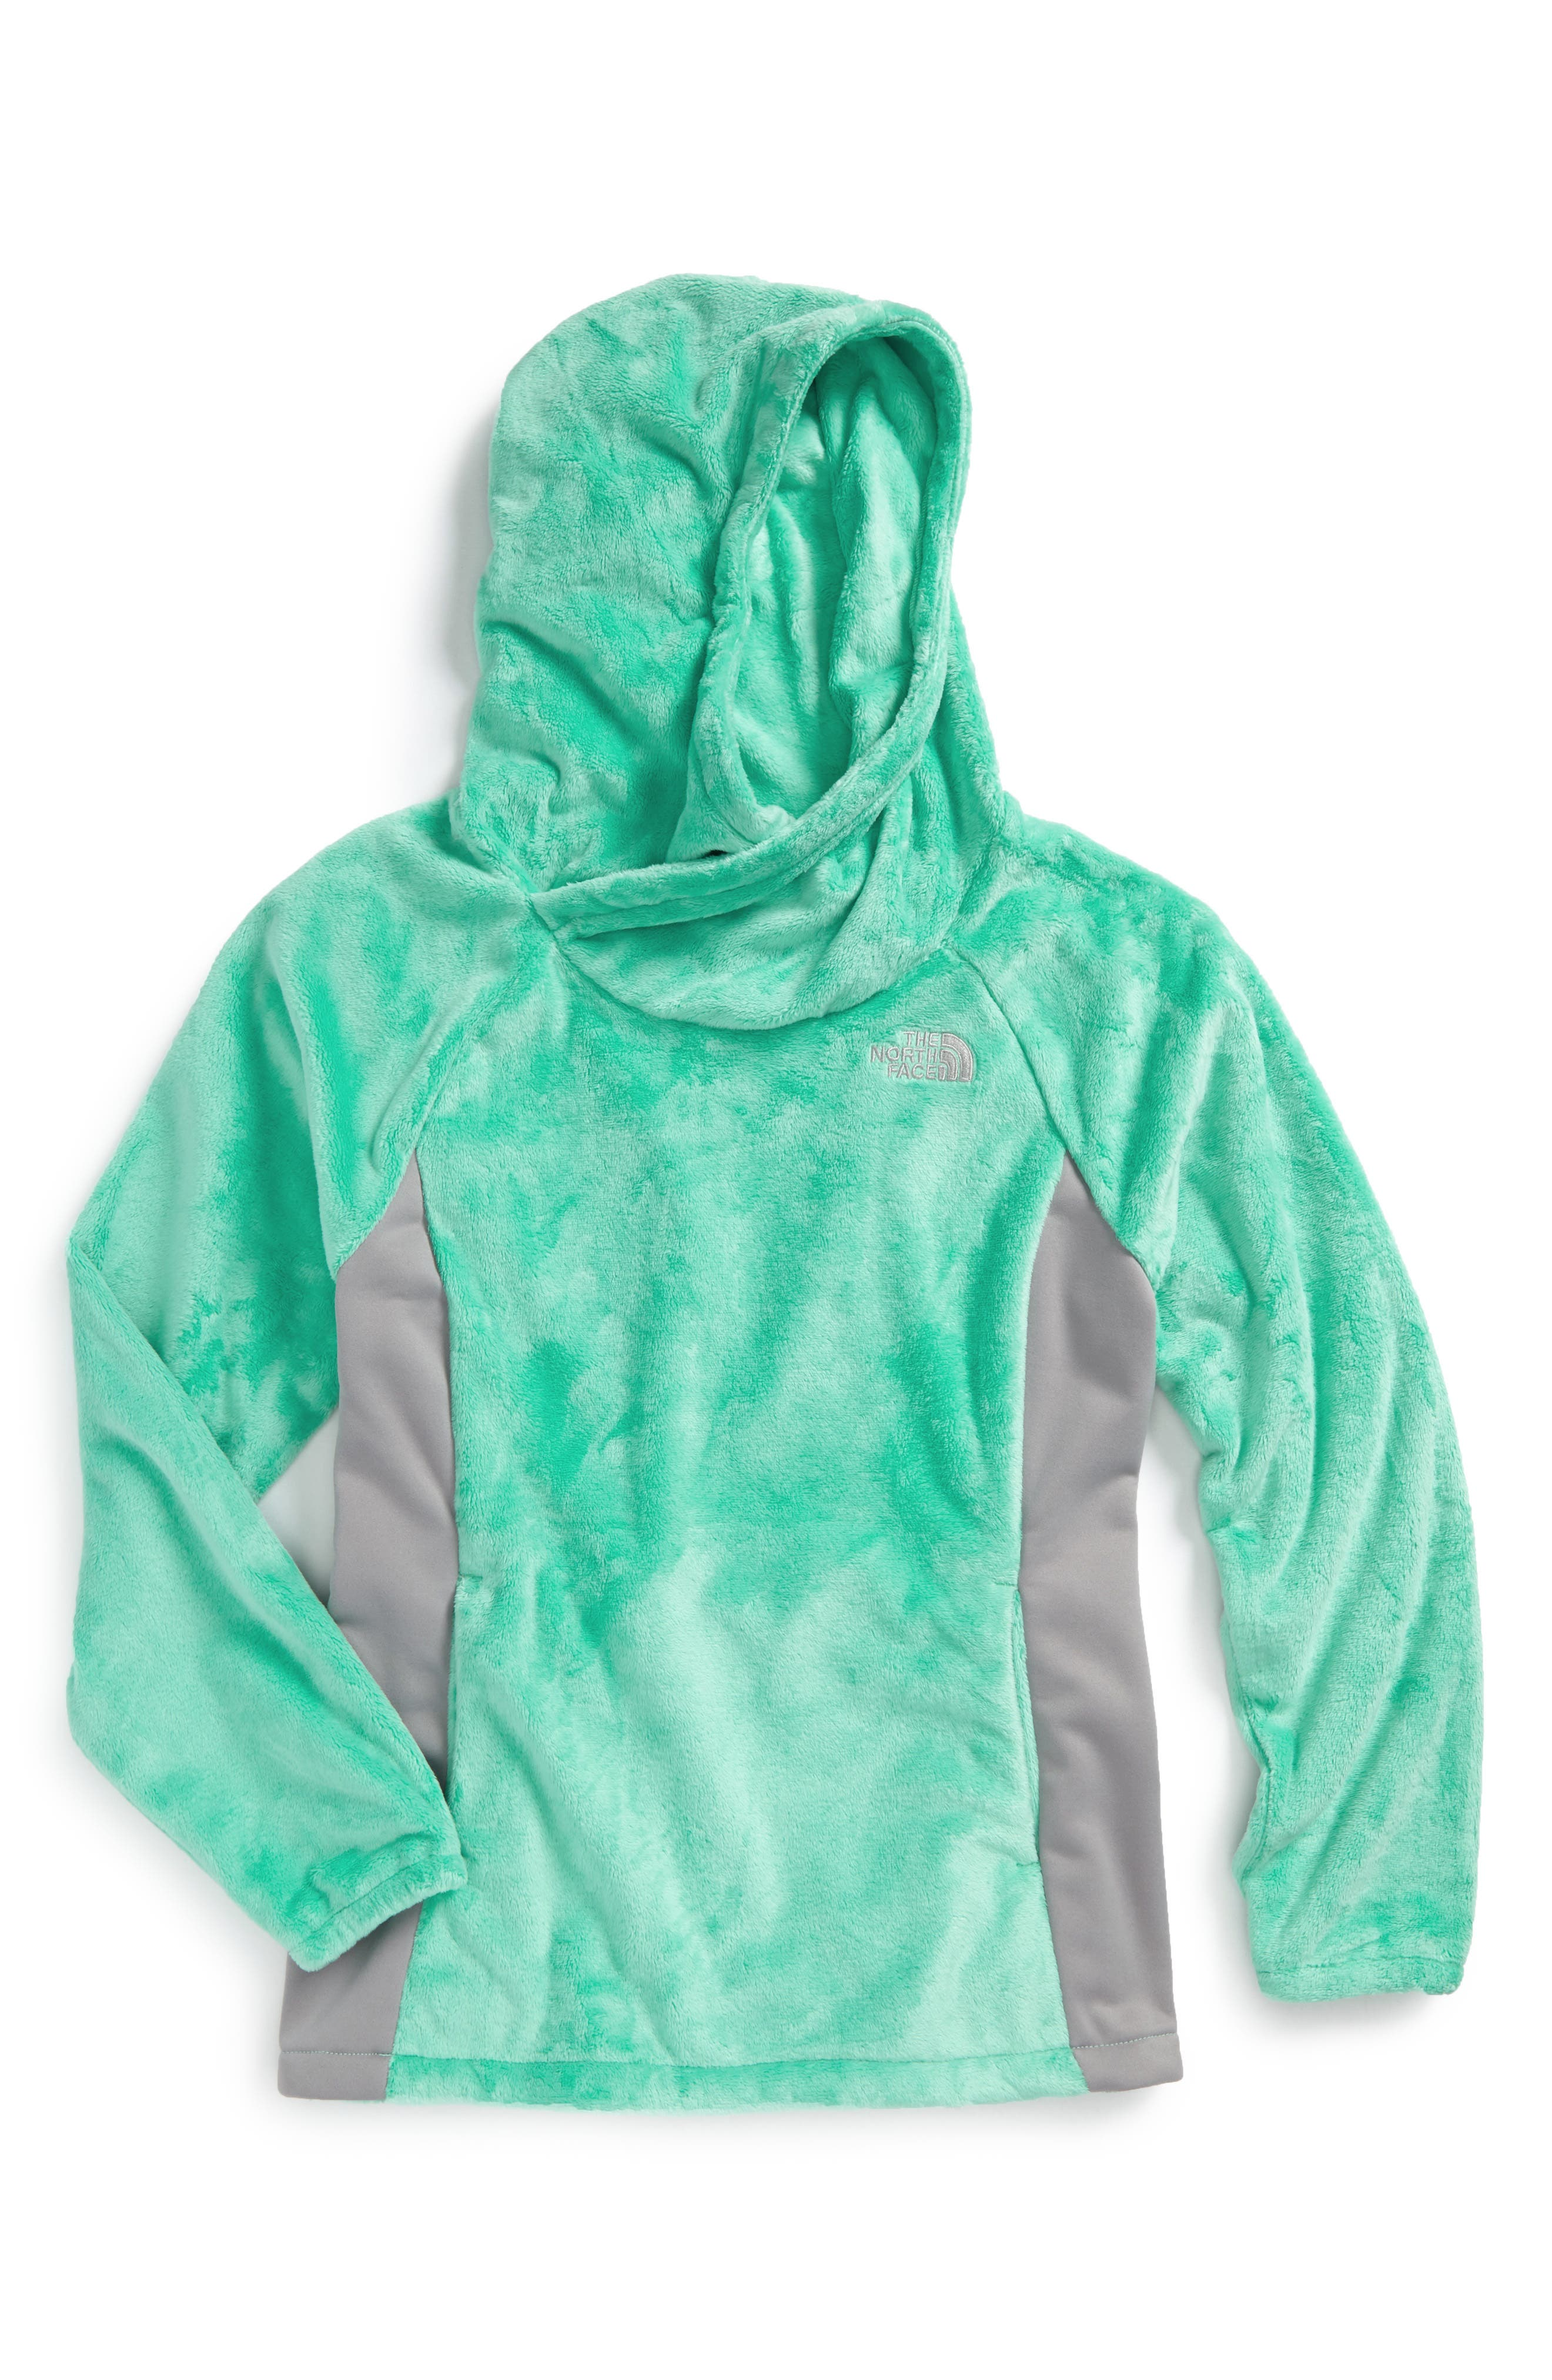 Alternate Image 1 Selected - The North Face Oso Fleece Pullover (Little Girls & Big Girls)